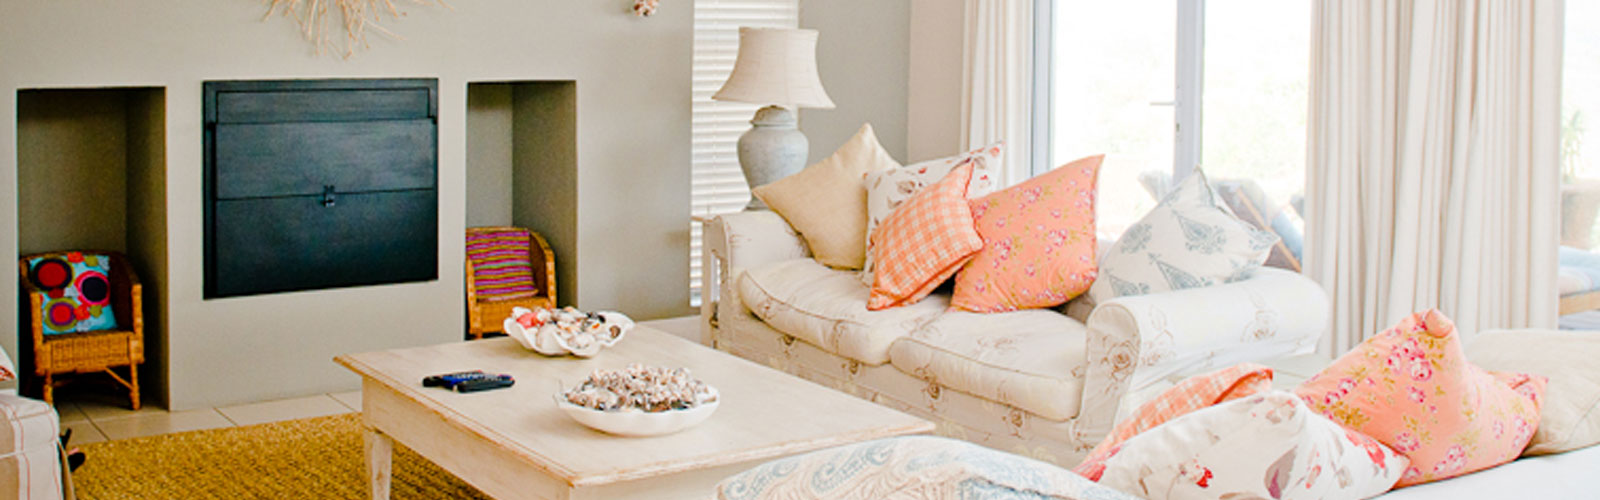 interior design, upholstery, bed linen and curtains in langebaan